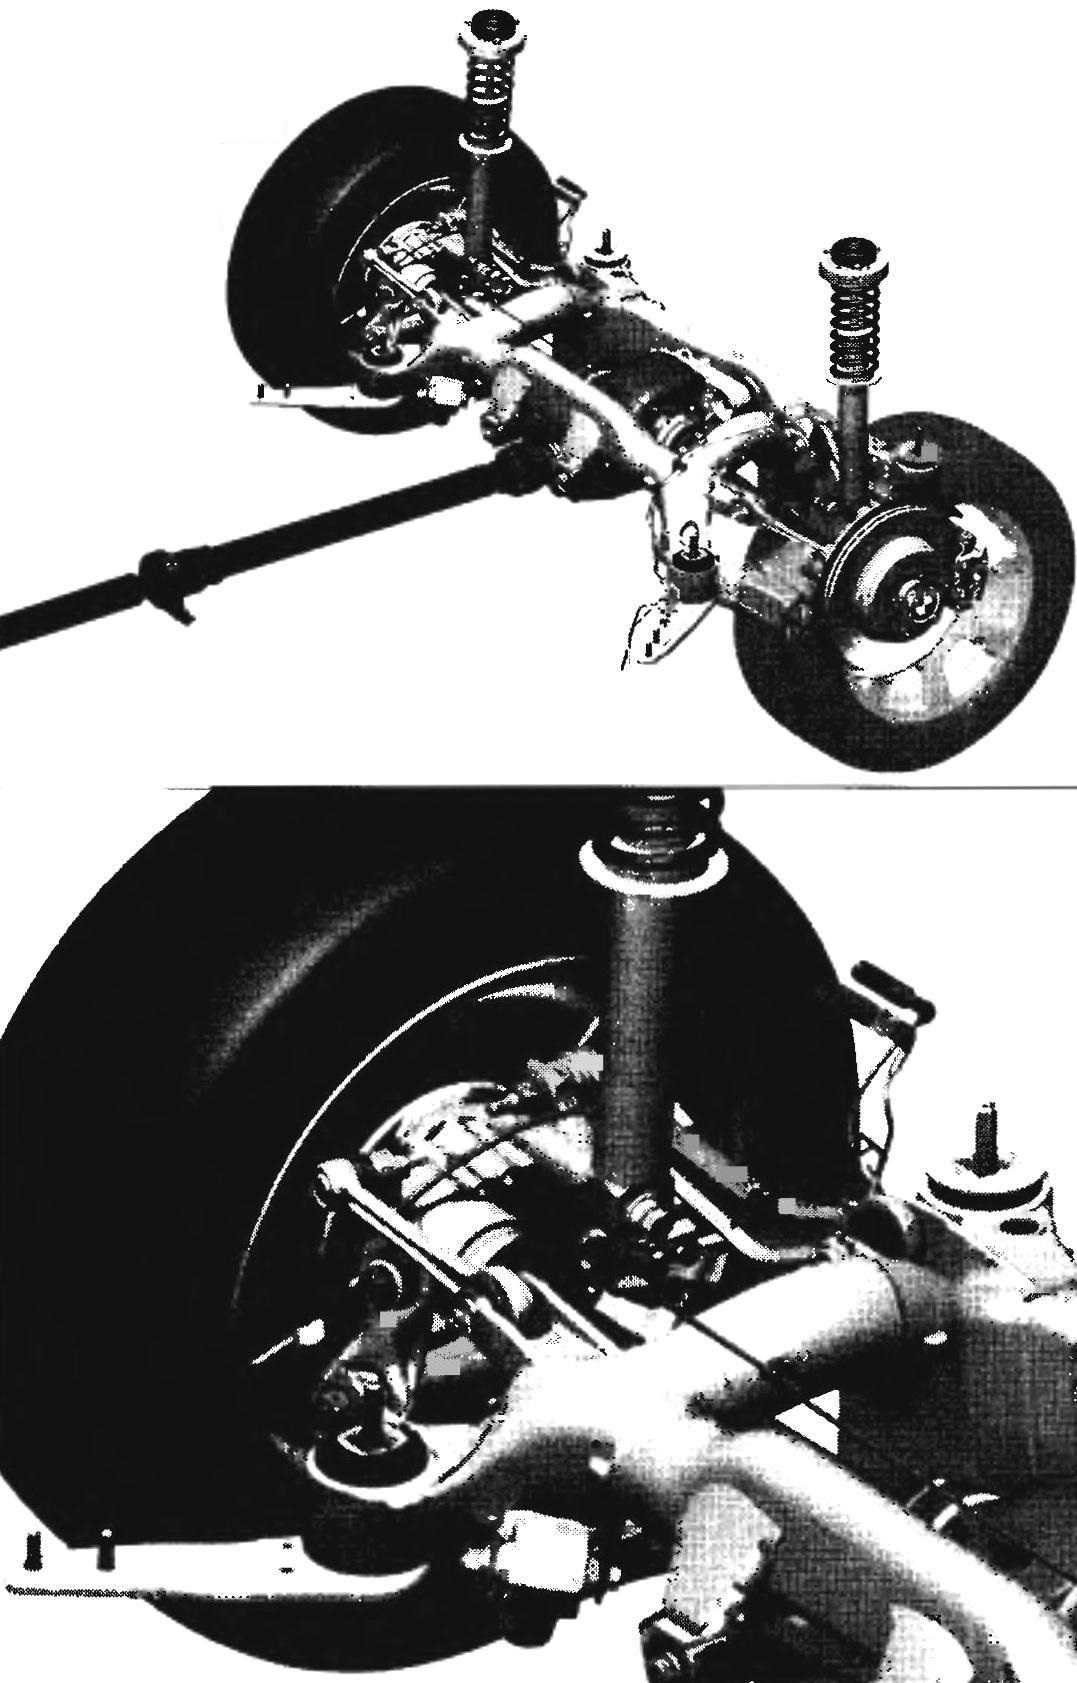 Multi-link rear suspension — almost all of its parts from aluminum alloy. Made of aluminum and the propeller shaft